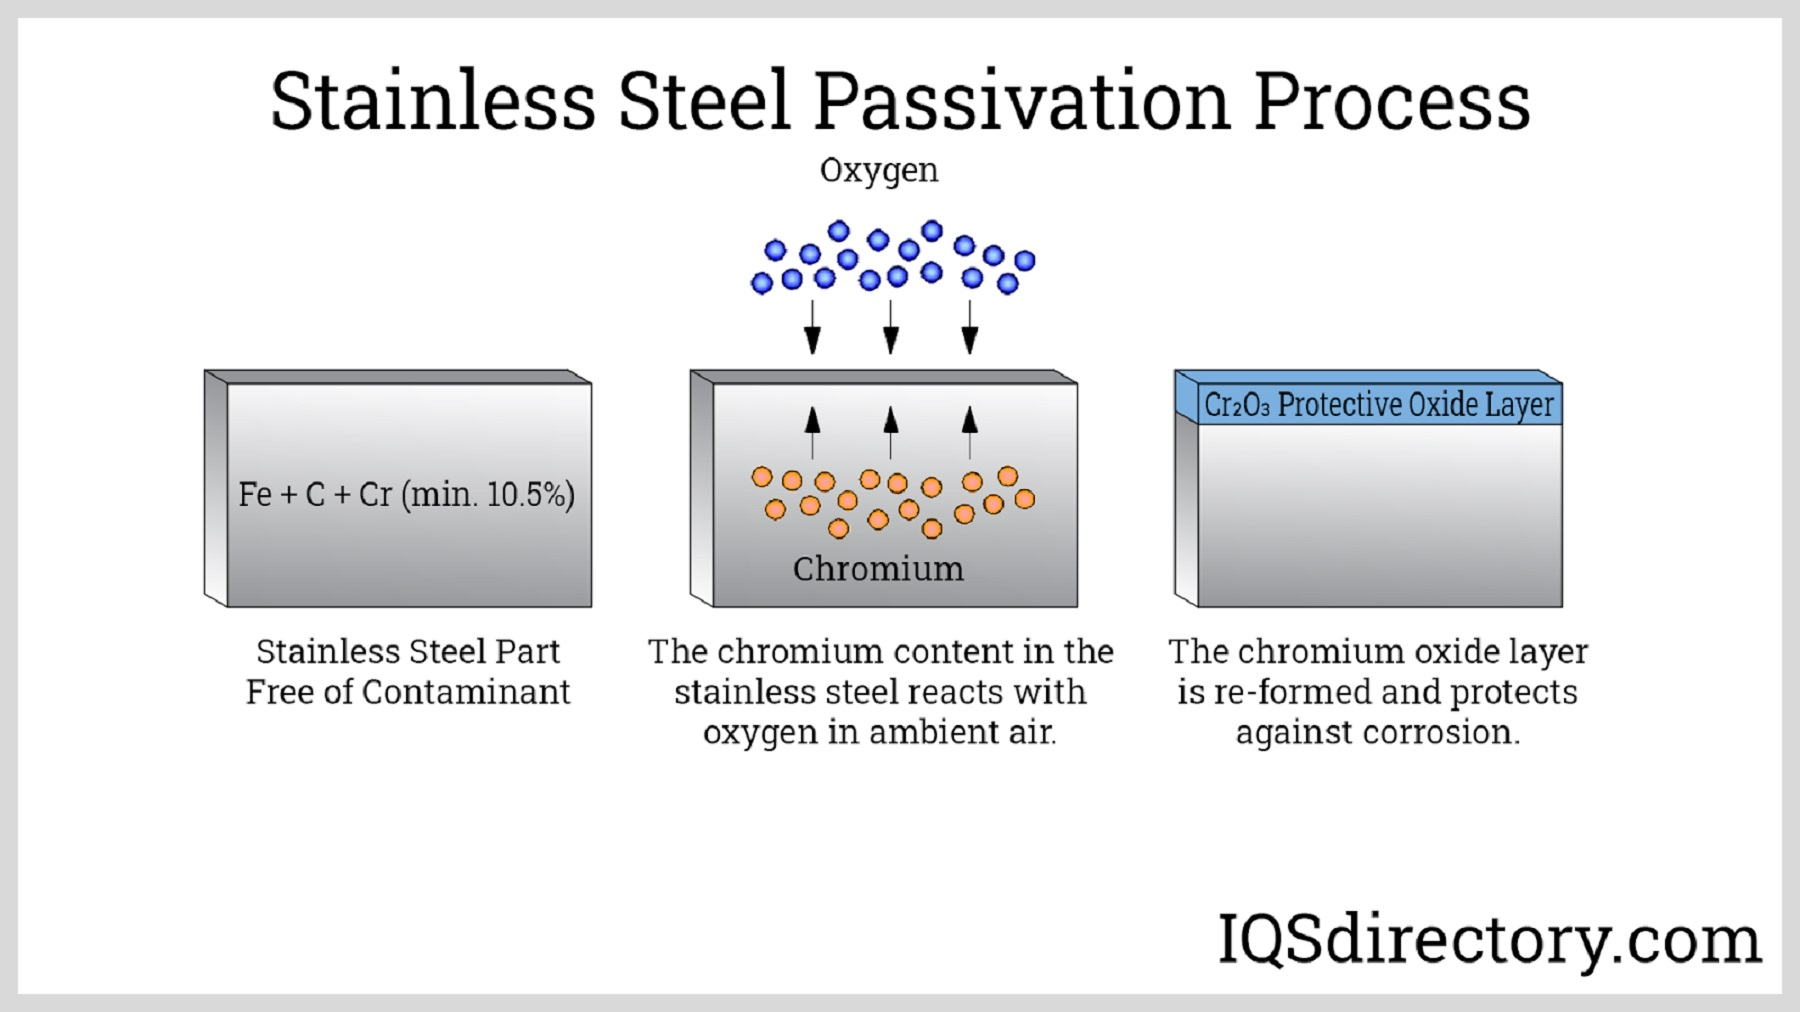 Stainless Steel Passivation Process